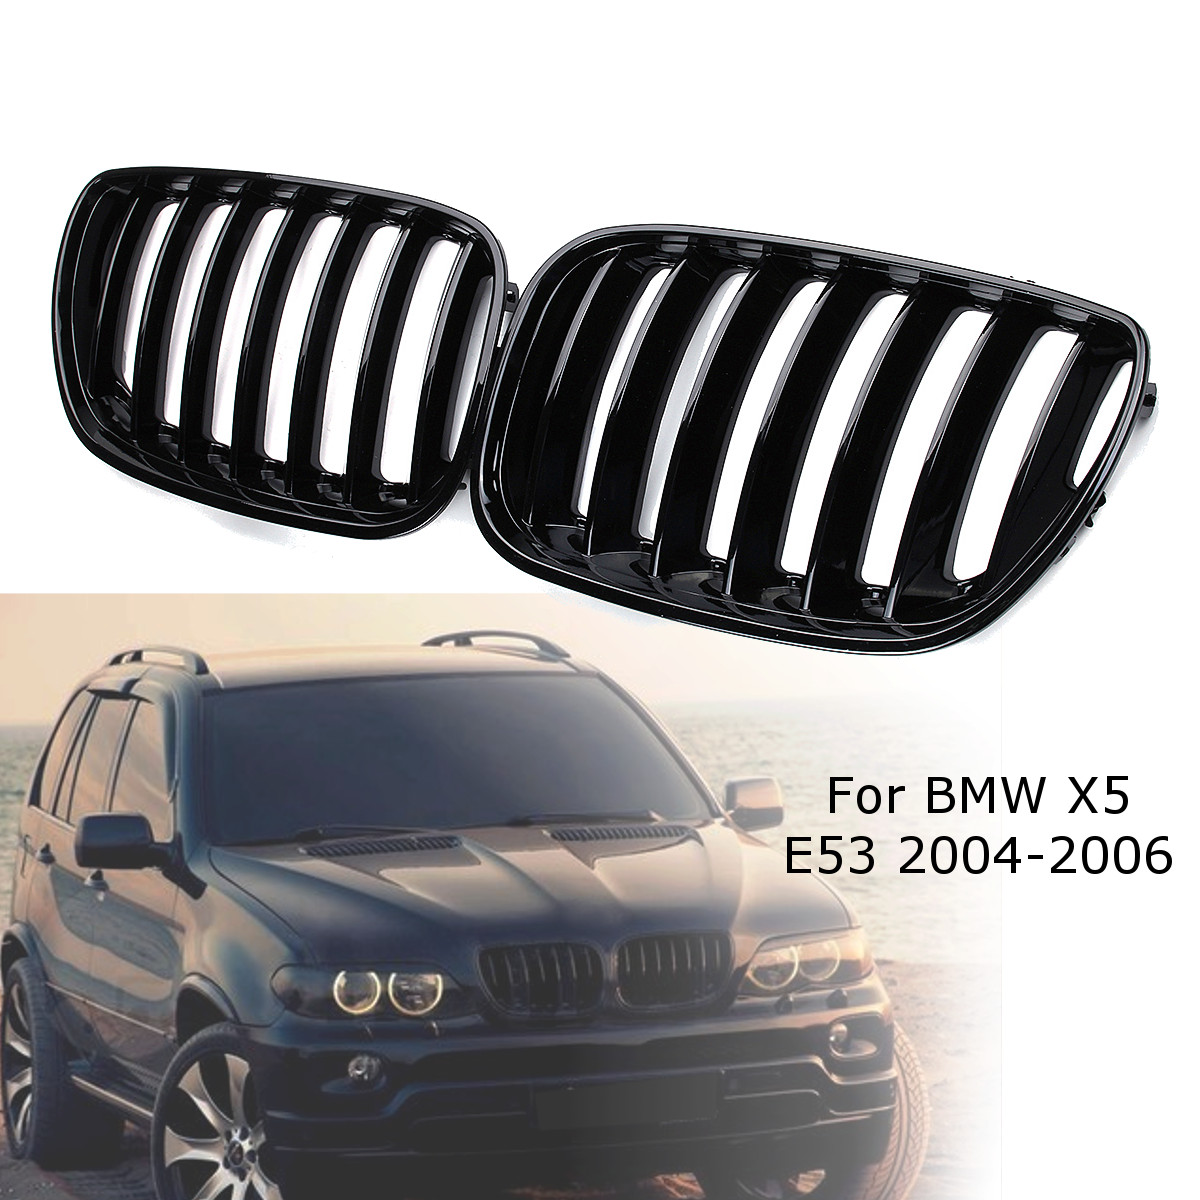 Grill Kidney 2006 Front X5 E53 BMW 2005 Black Gloss Right Car 2pcs Left ABS for 2004/2005/2006/.. title=